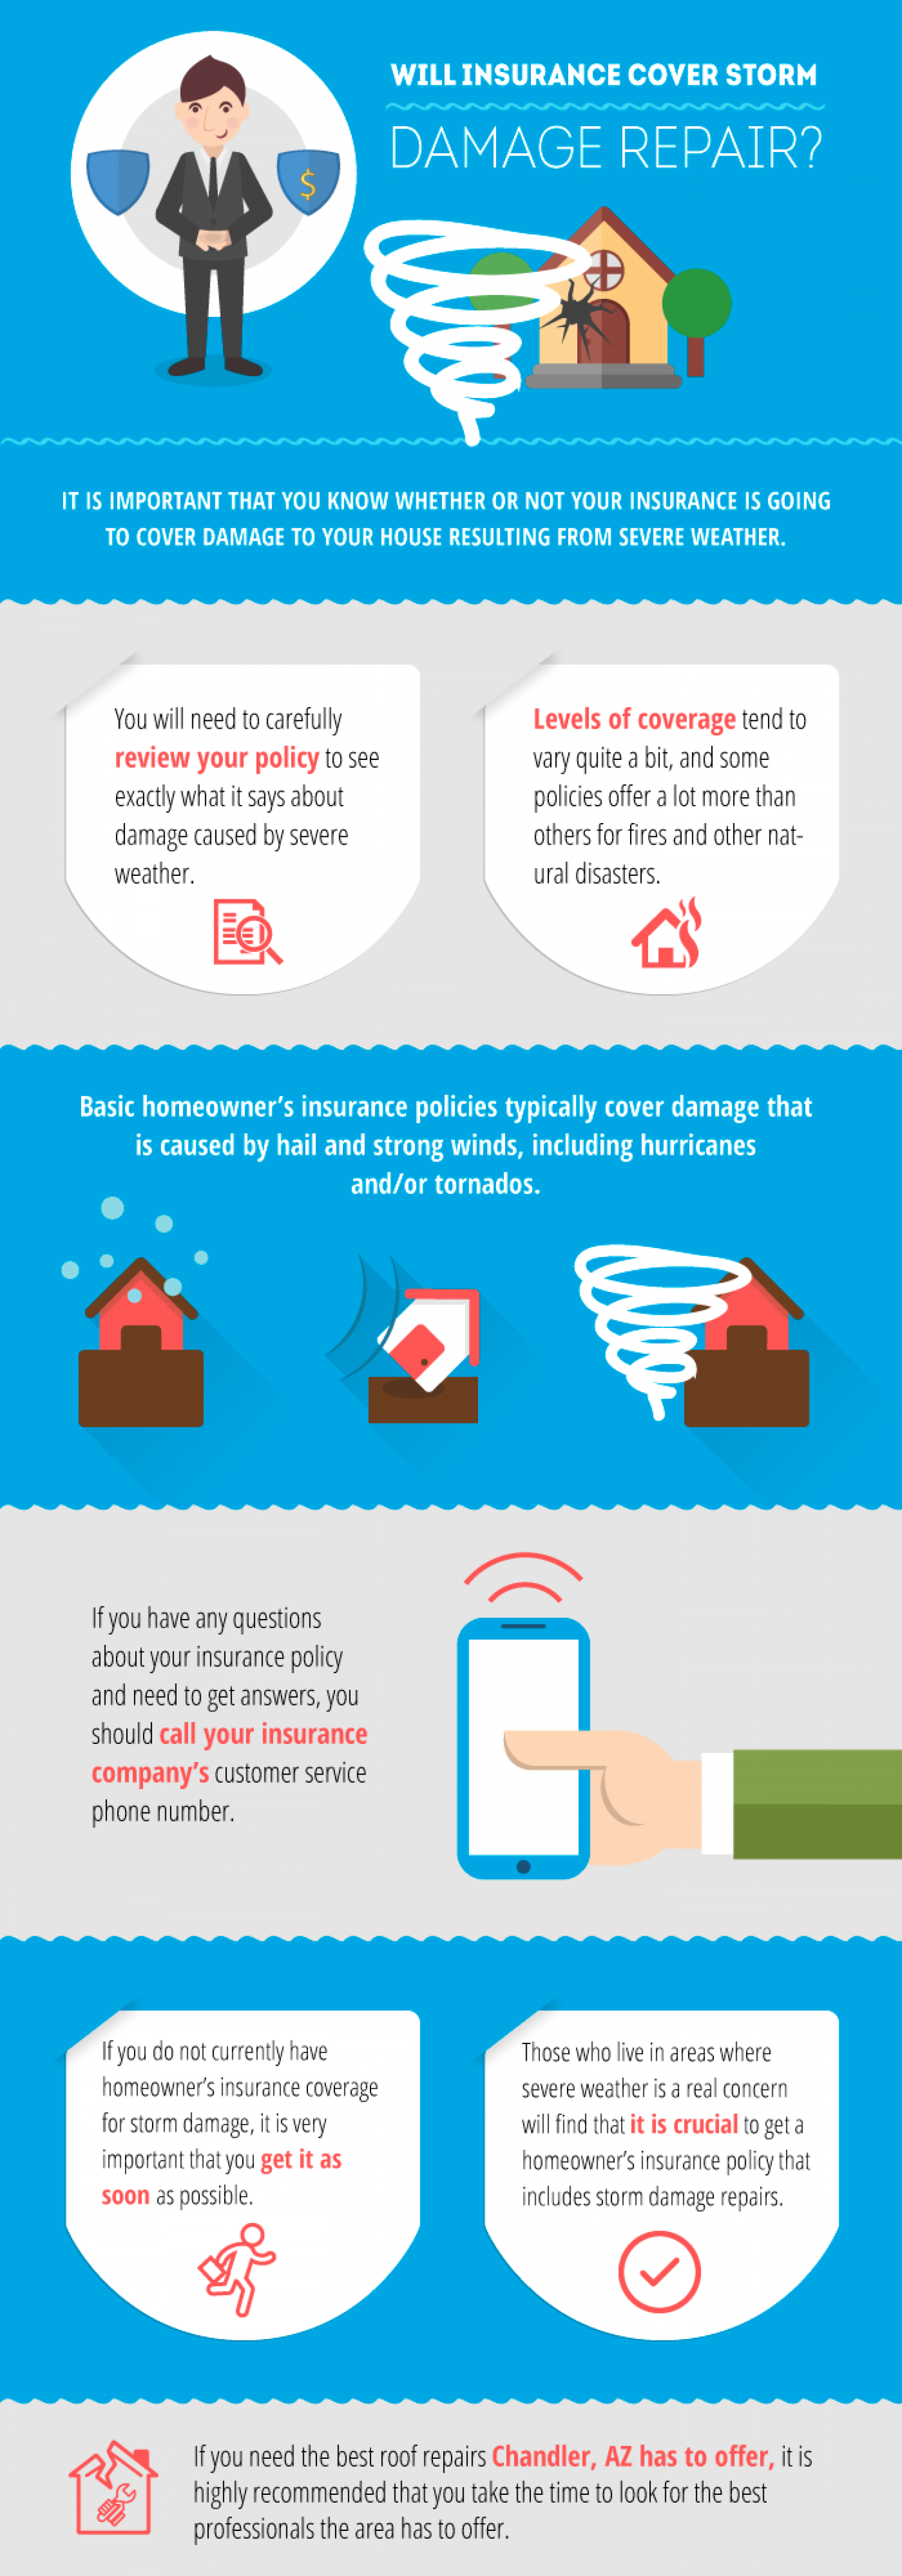 Will Insurance Cover Storm Damage Repair? Infographic